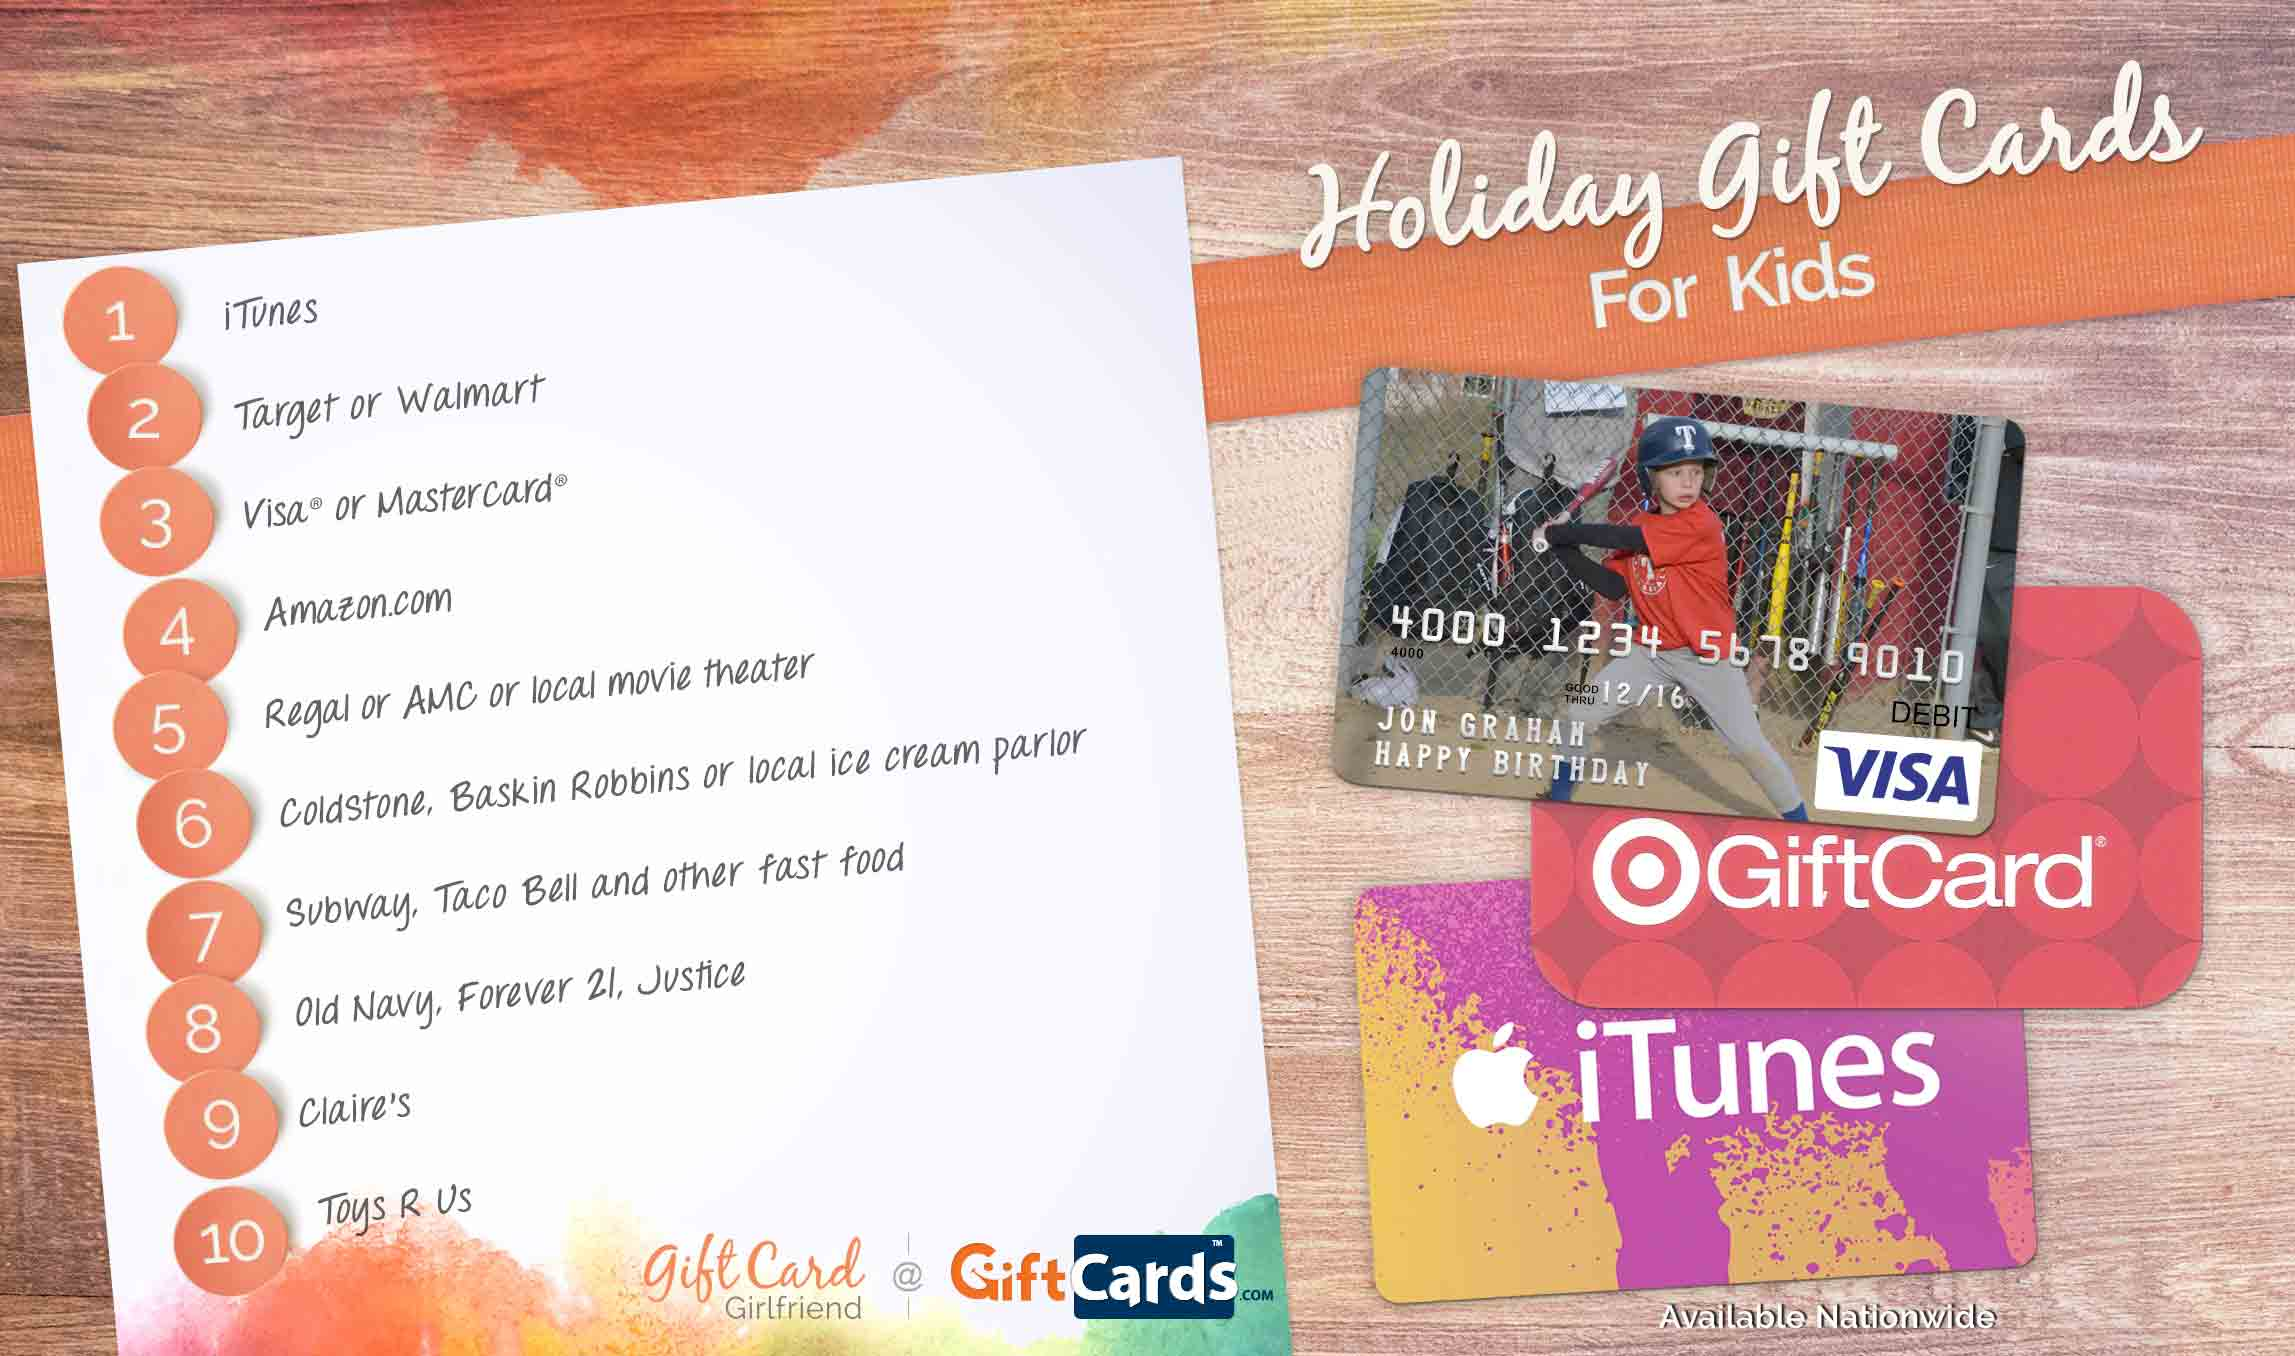 The Best Gift Cards for Kids